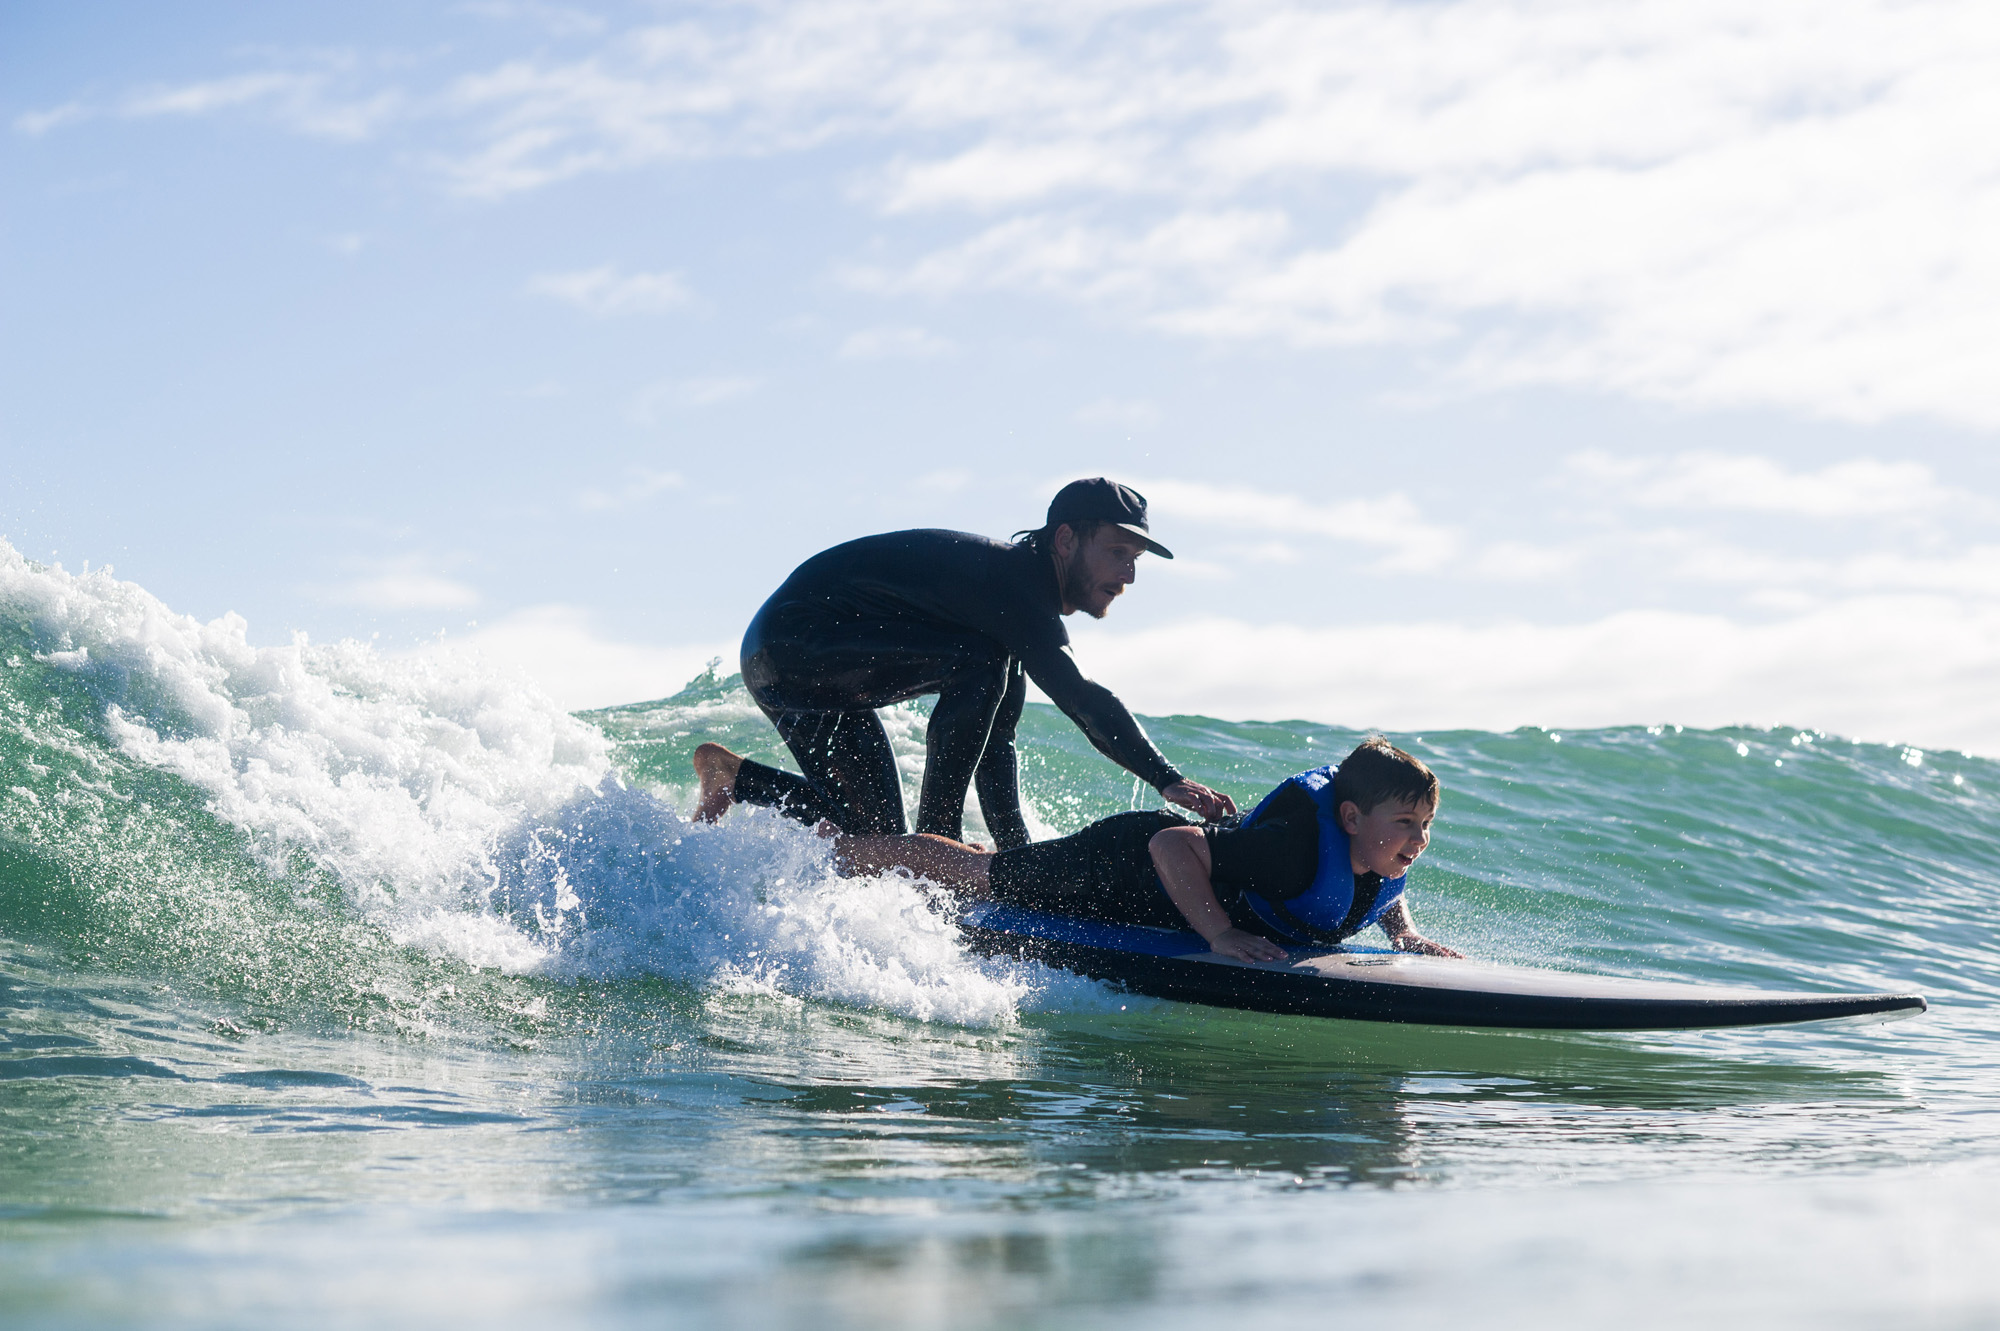 Become a Surf Instructor! The dream job.